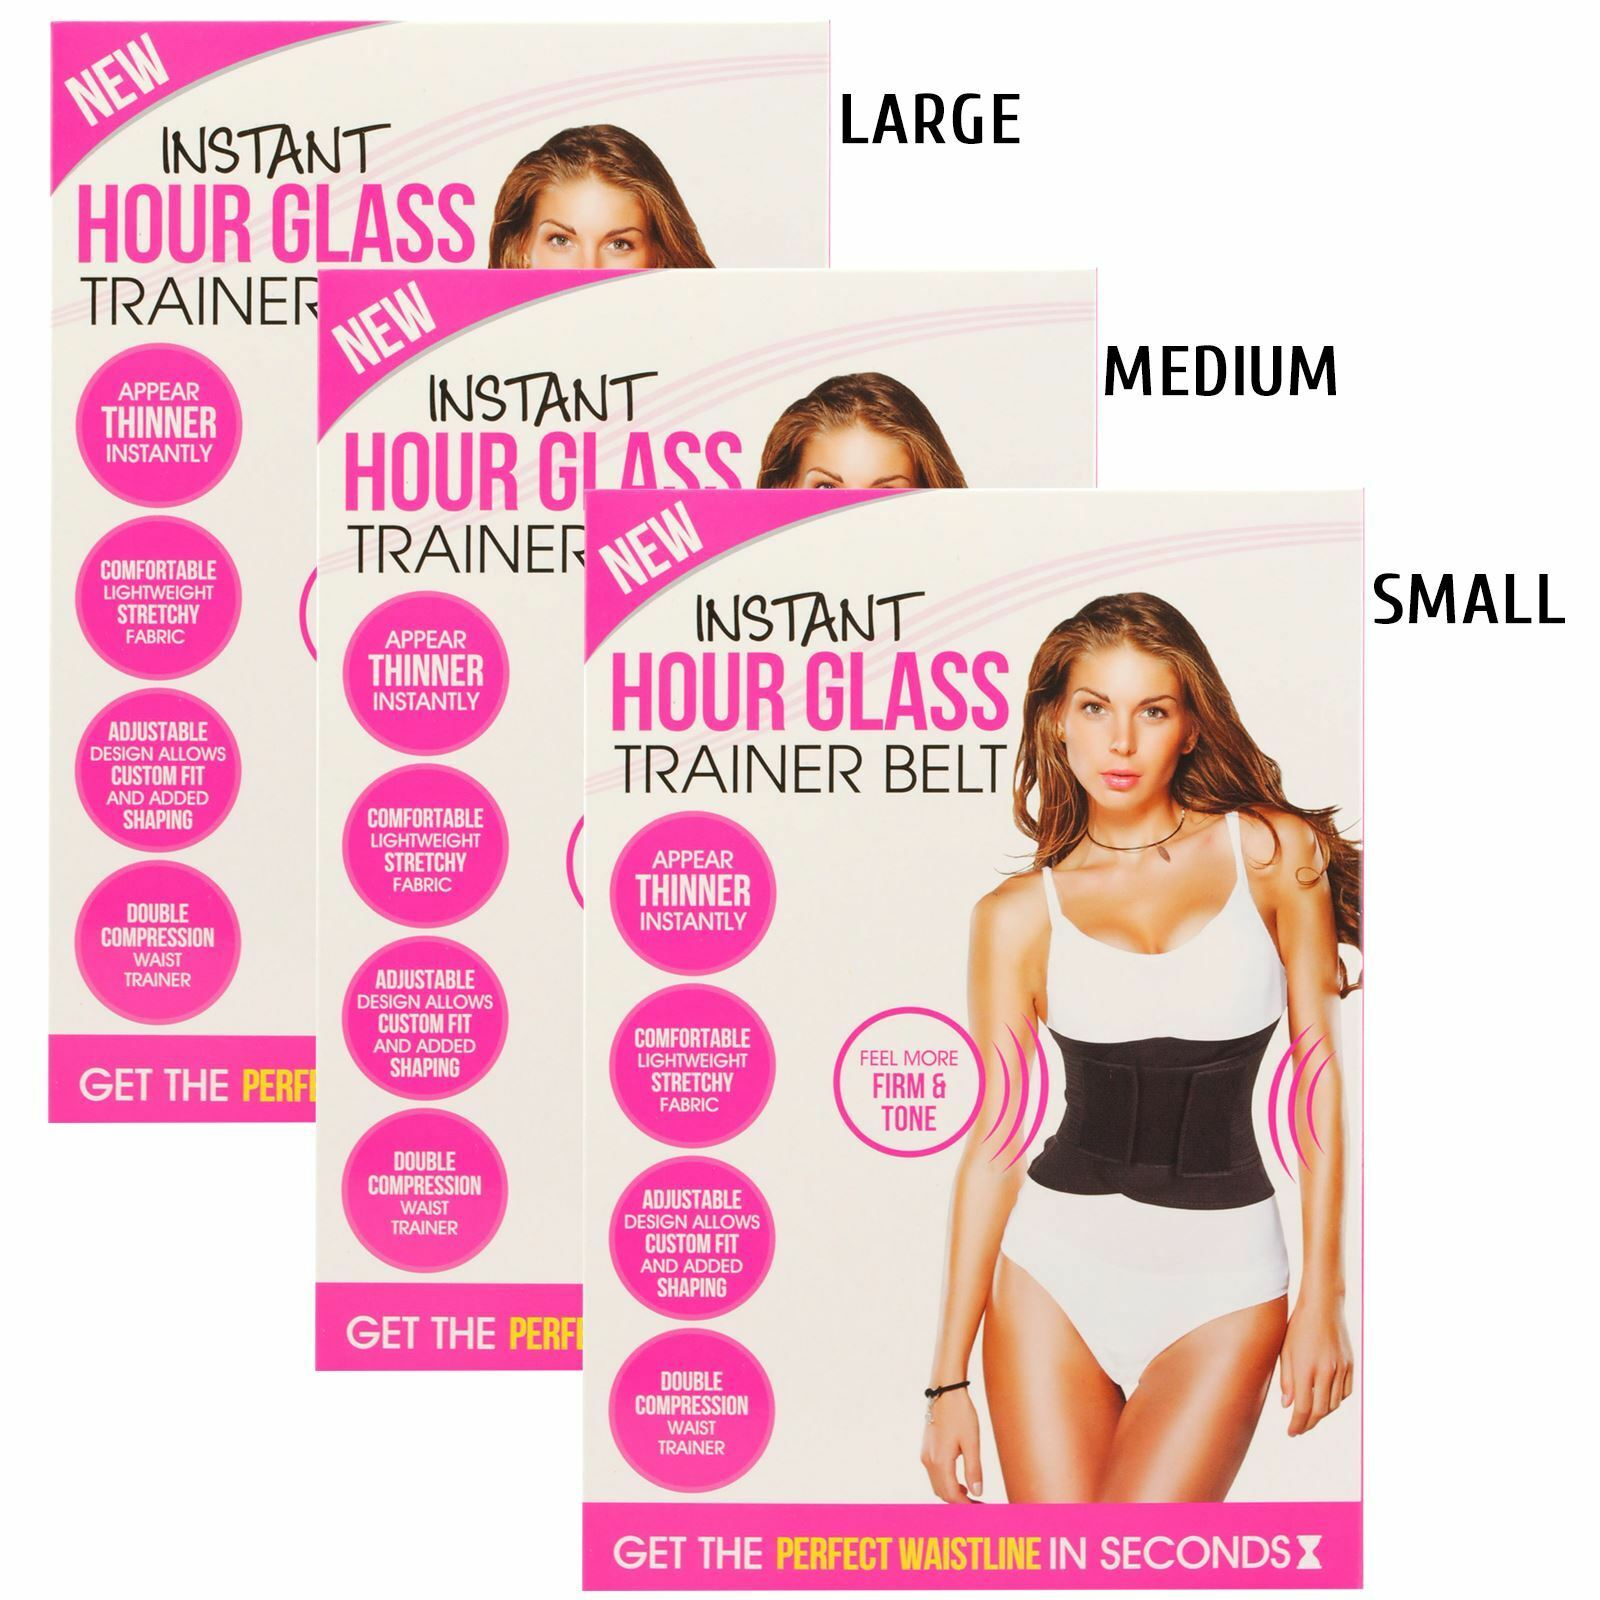 be6ae82e41 Trainer Belt Clincher Corset Instant Hourglass Shape Waist Trimmer  Adjustable Medium 744005 for sale online